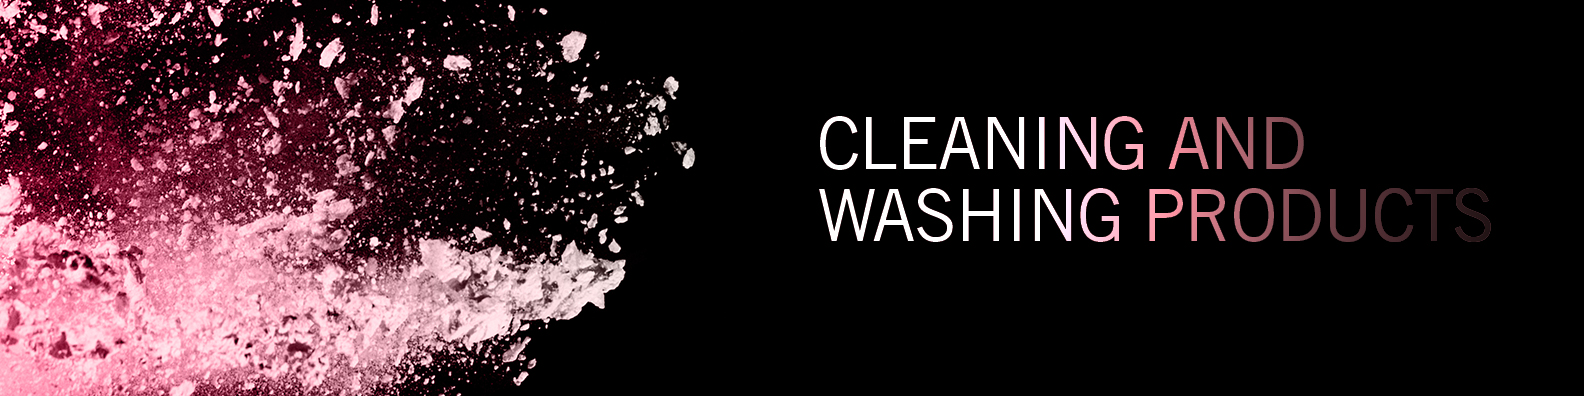 Cleaning and Washing Products